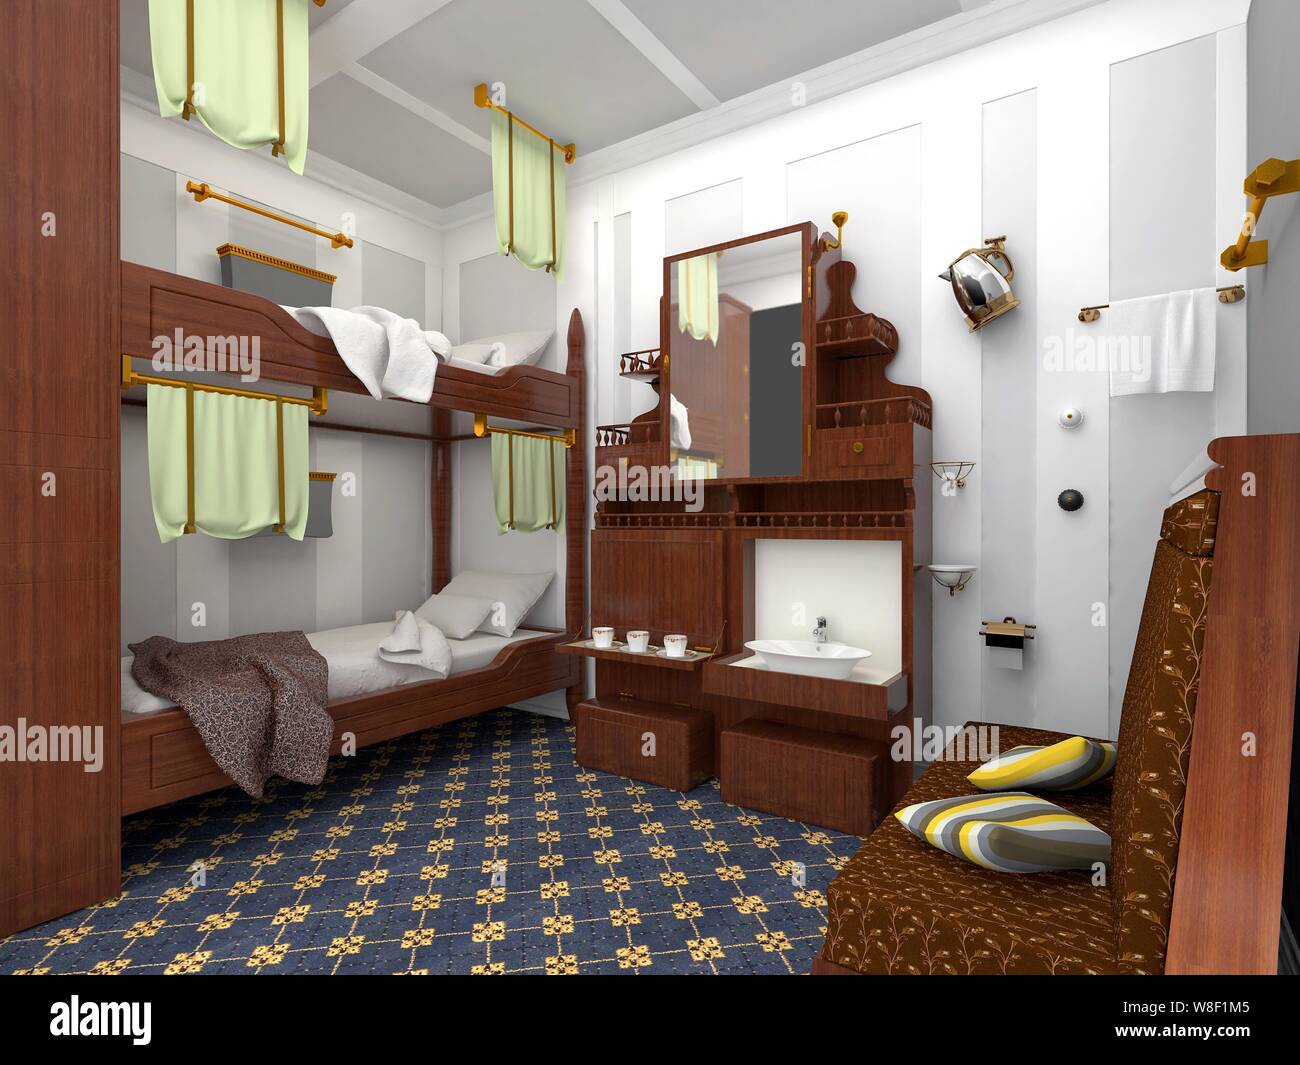 This Artist Rendition Shows An Interior View Of The Bedroom Of A Second Class Cabin In A Full Scale Replica Of The Titanic Ocean Liner Built By Seven Stock Photo Alamy